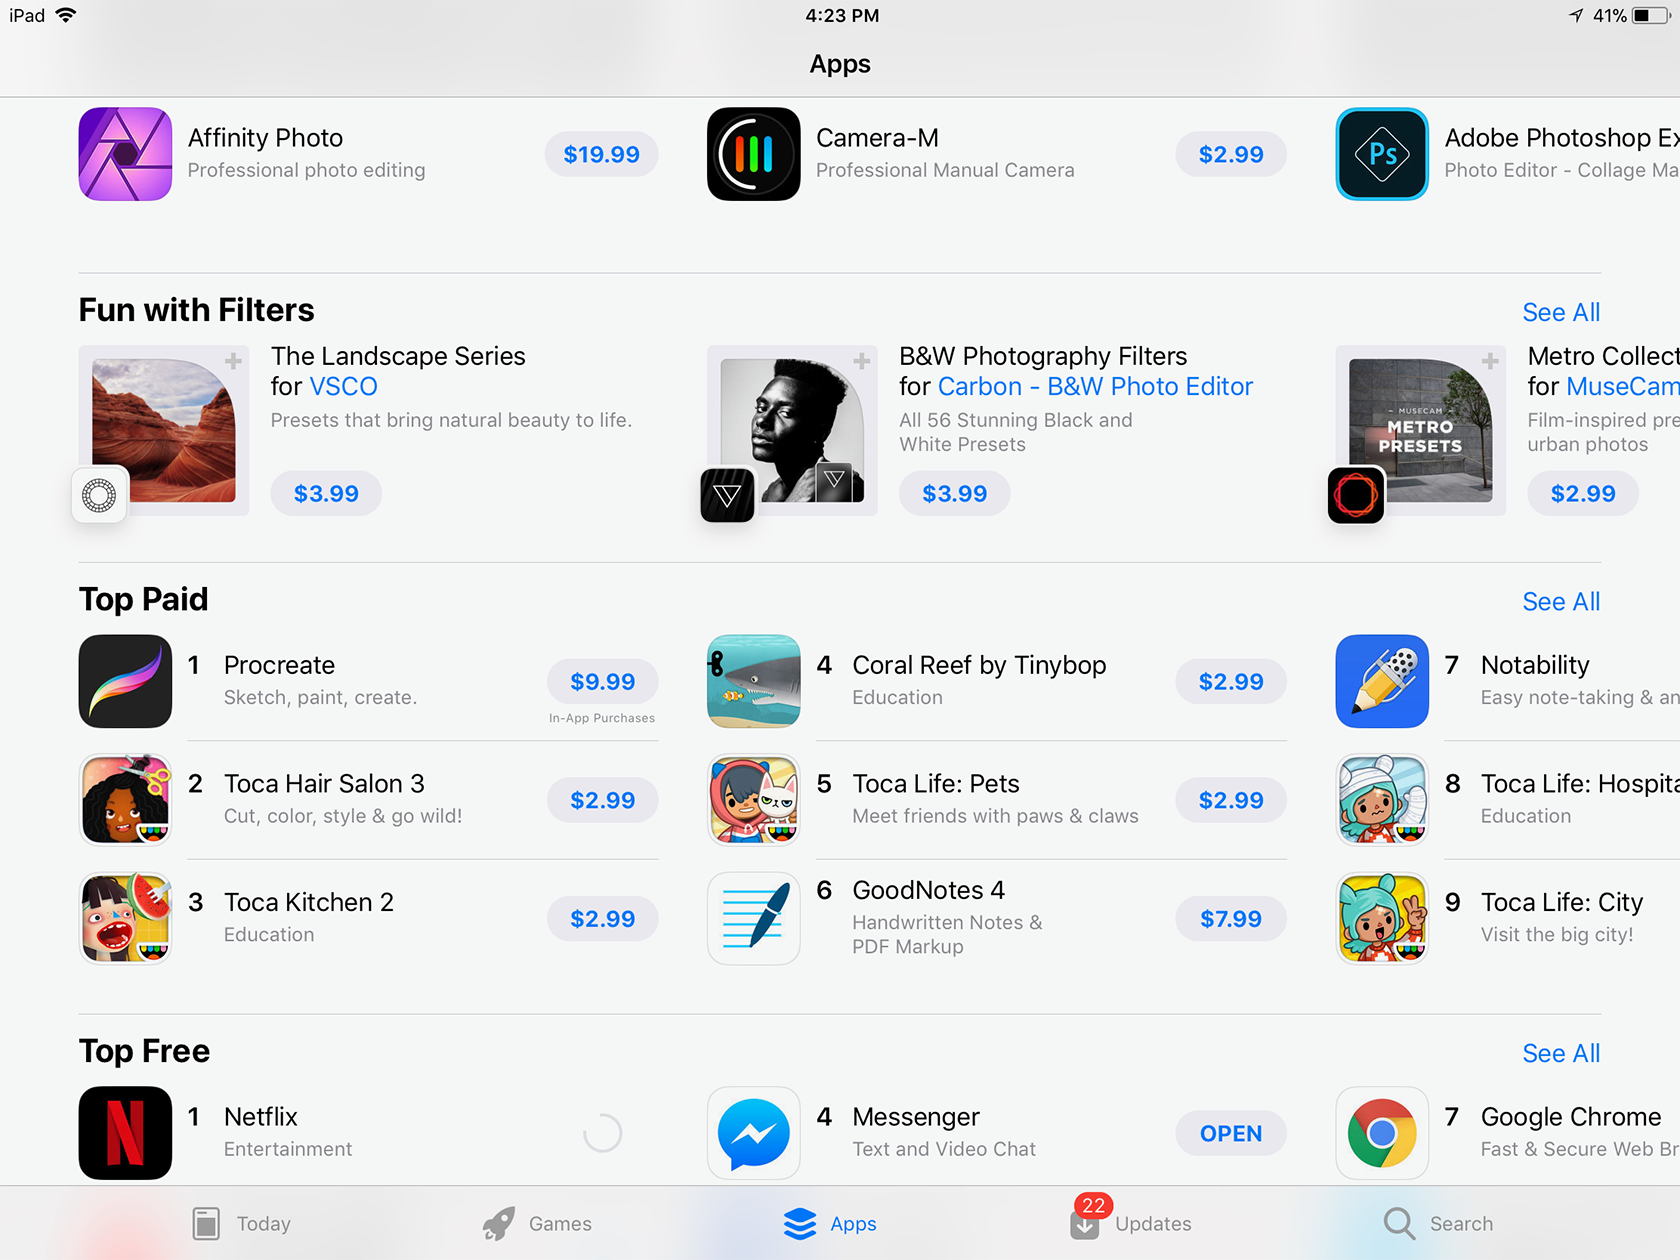 iOS app store on iPad